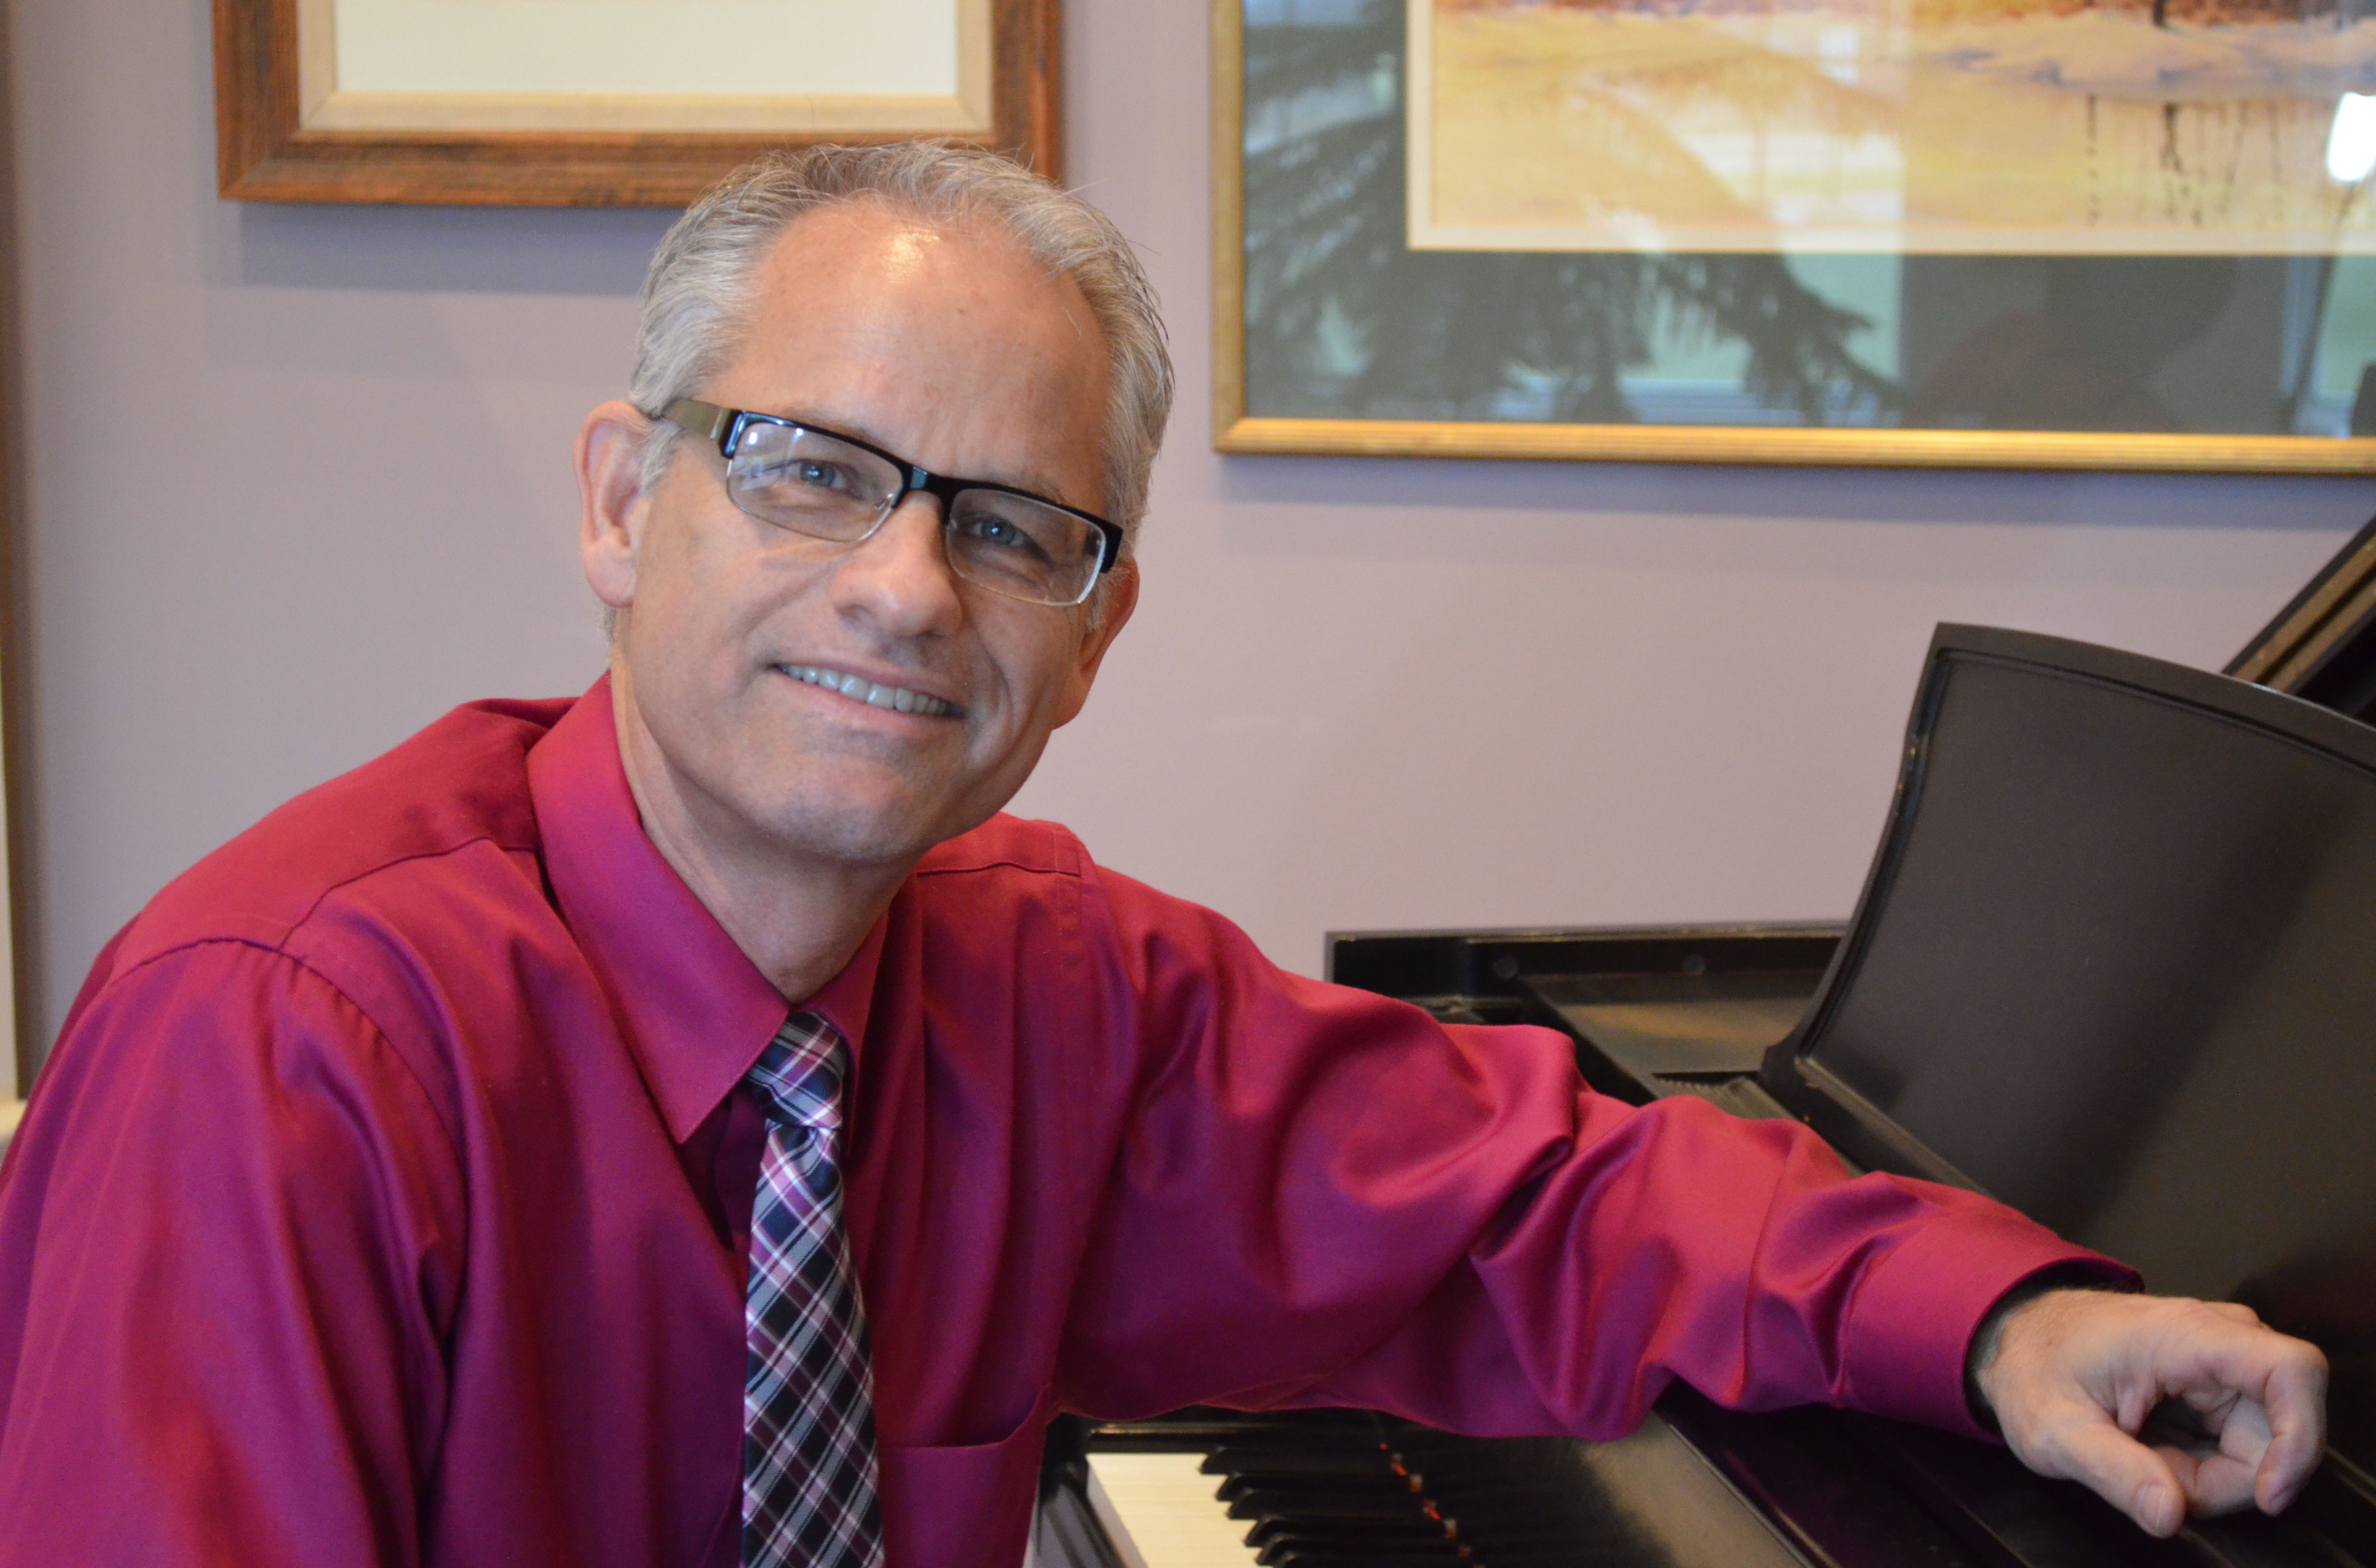 David Lawhead has joined the department of music and worship faculty. Photo courtesy of David Lawhead.